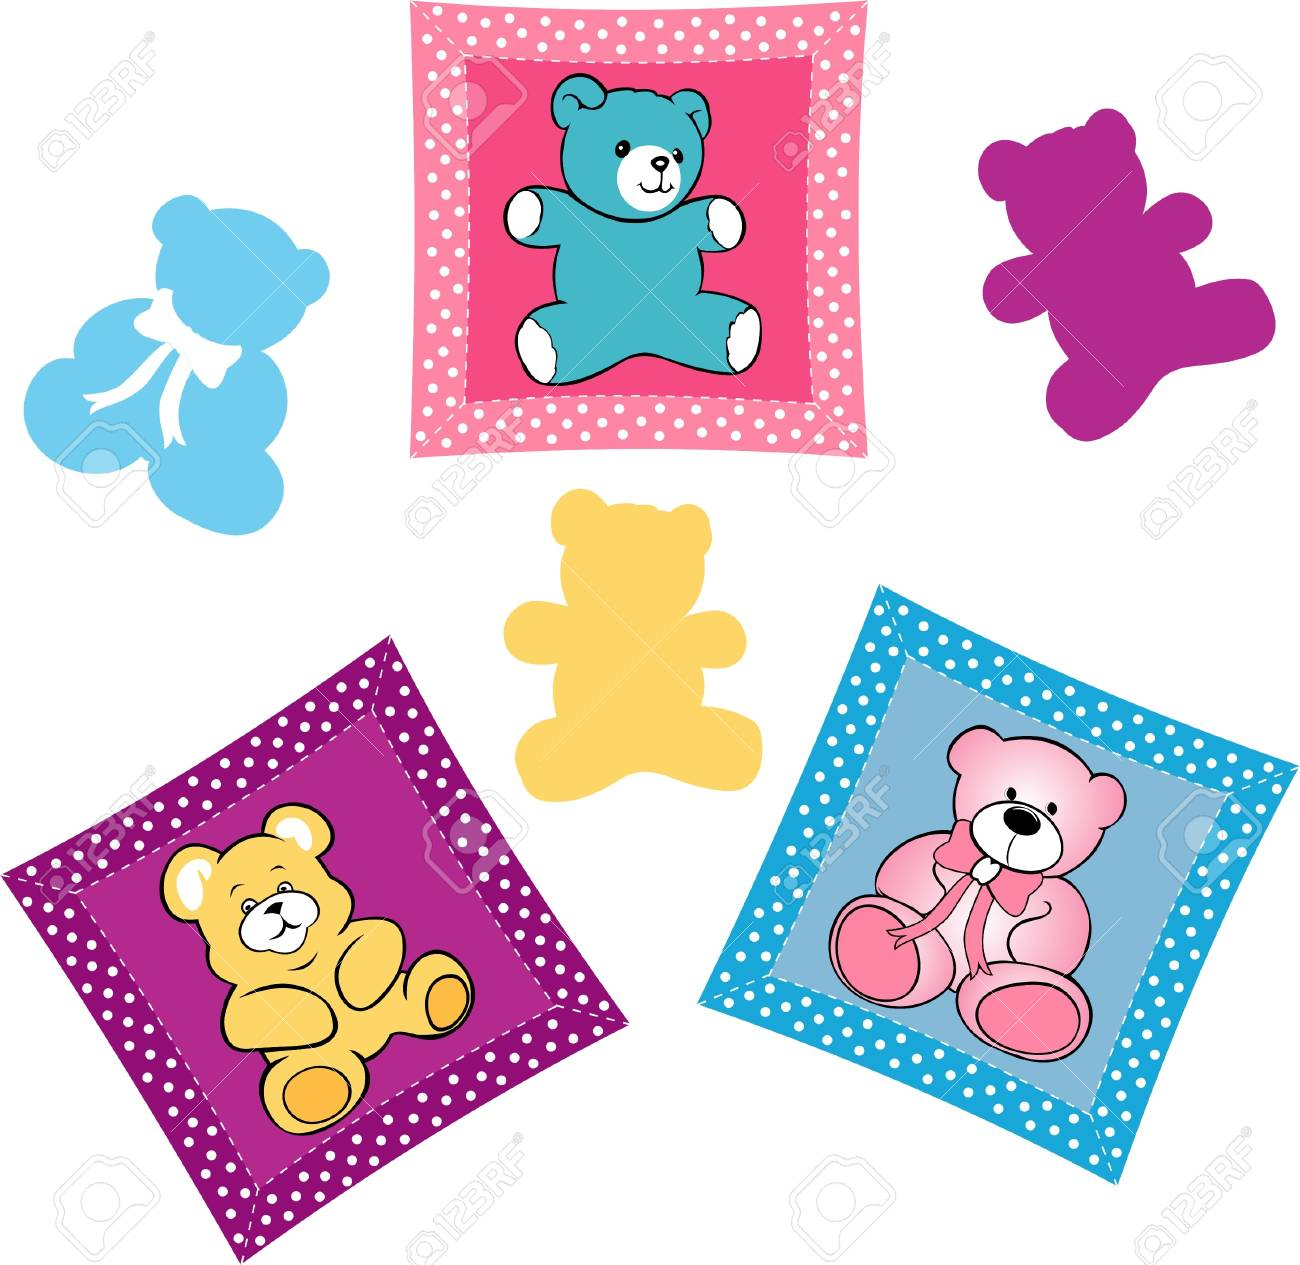 Baby shower card, teddy bears on the pillow baby rooms Stock Vector - 16760840